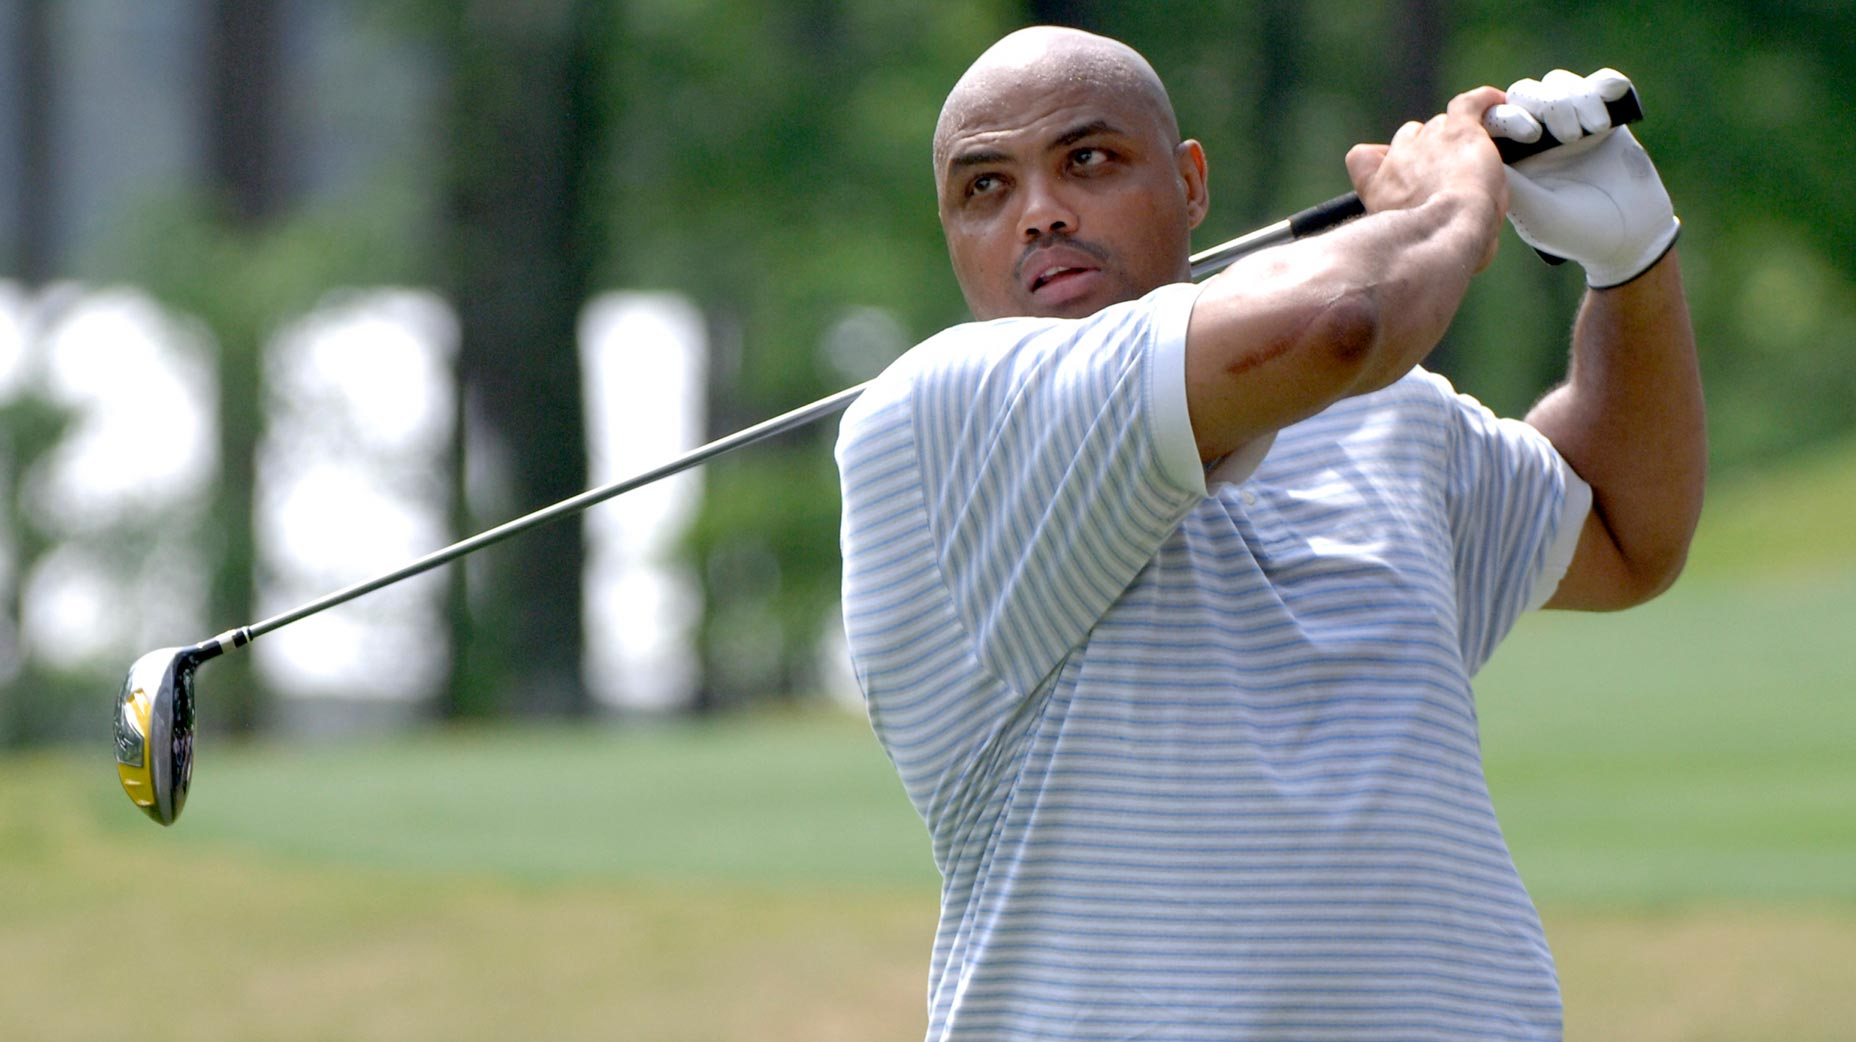 charles barkley swings a golf club